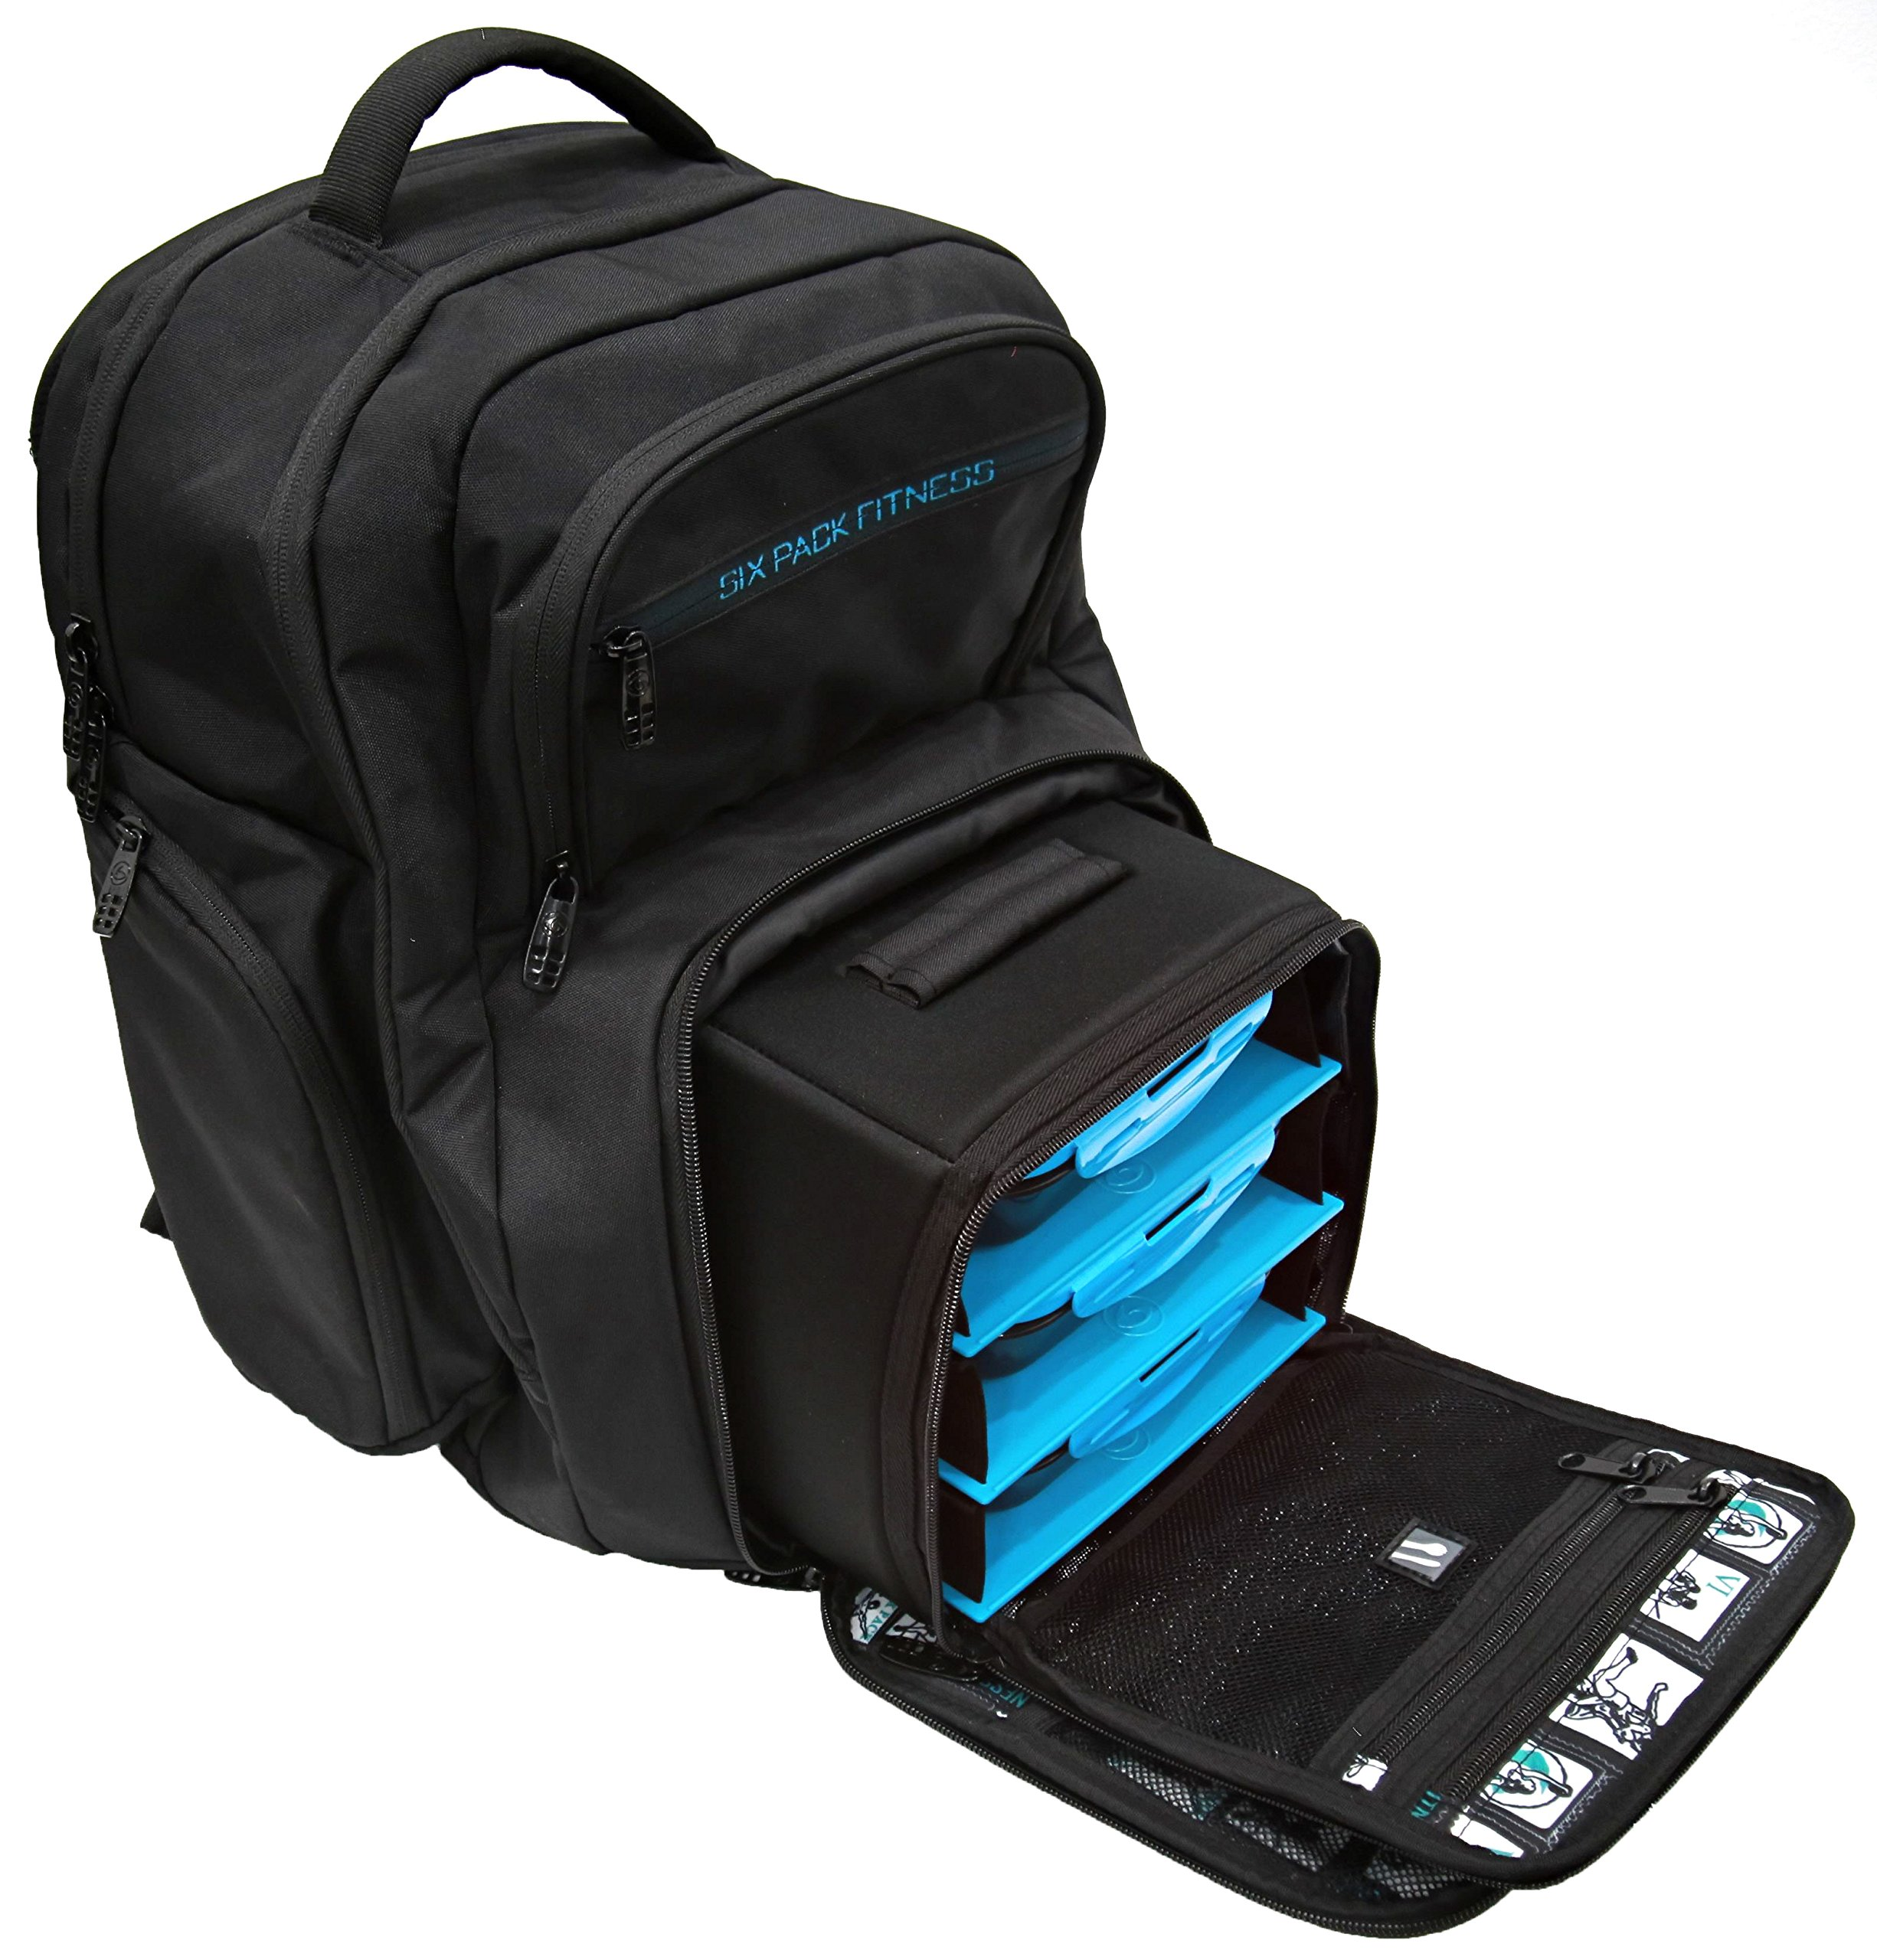 7850e0ccb4b6 6 Pack Fitness Expedition Backpack W  Removable Meal Management System 300  Black Neon Blue w  Bonus ZogoSportz Cyclone Shaker